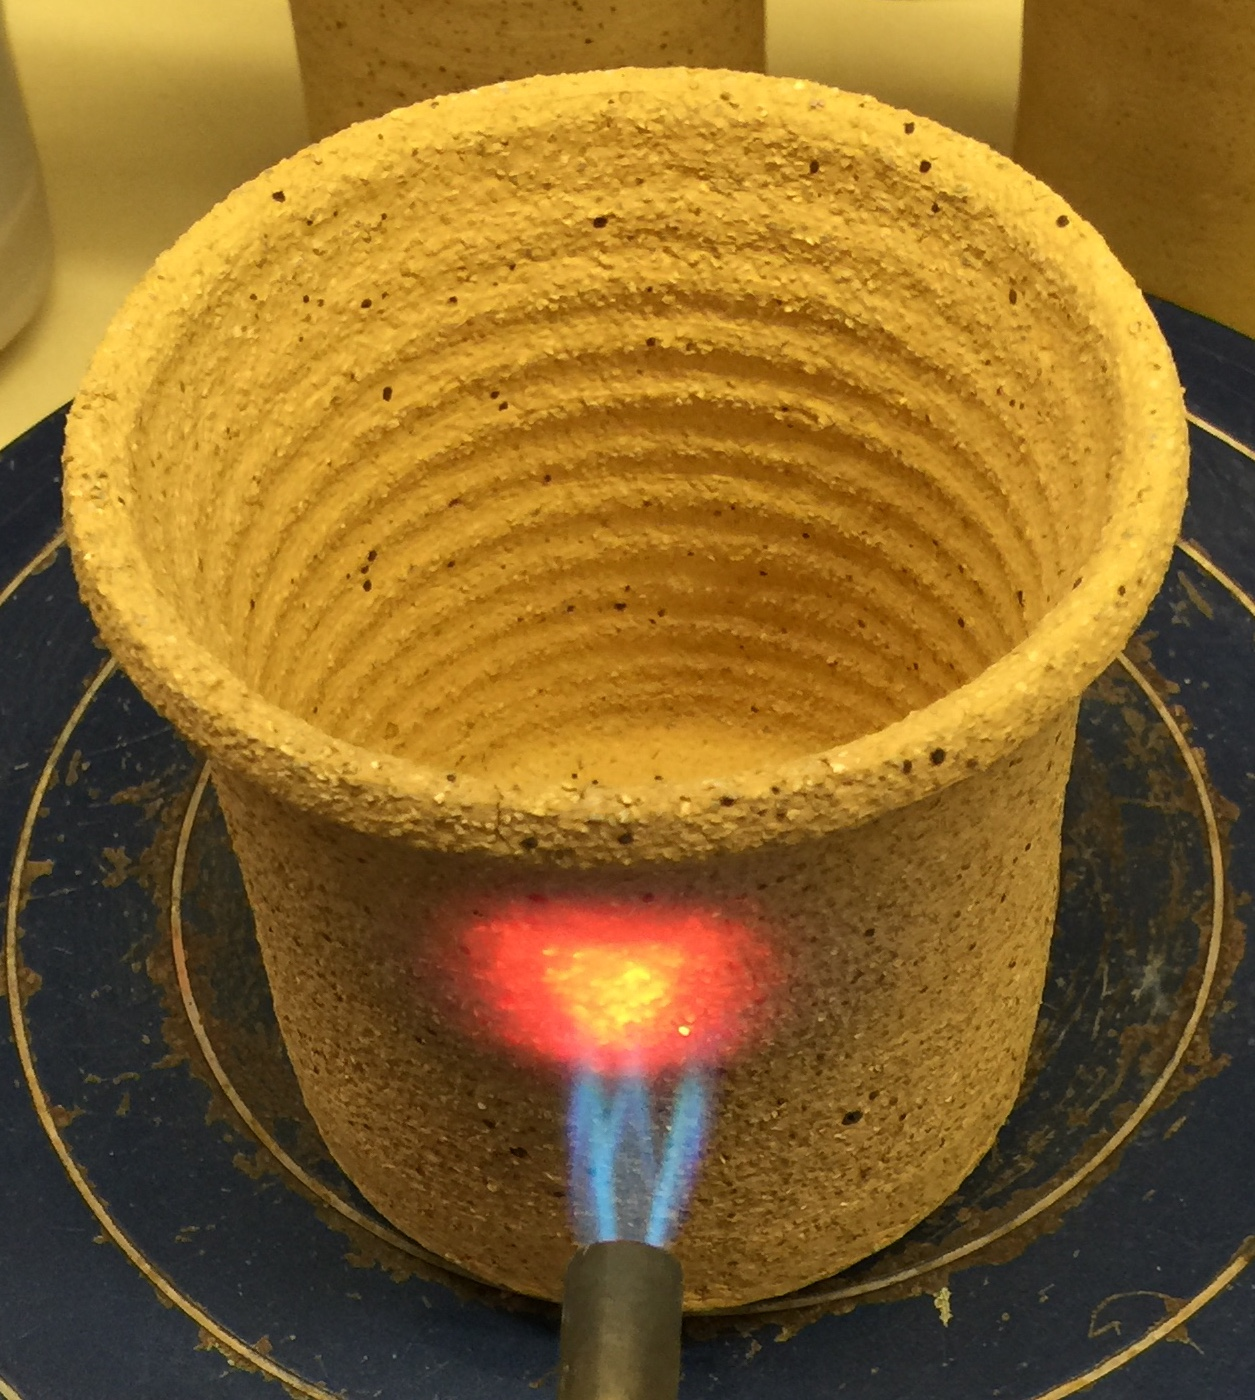 A flameware body being tested for thermal shock. Is this a joke?